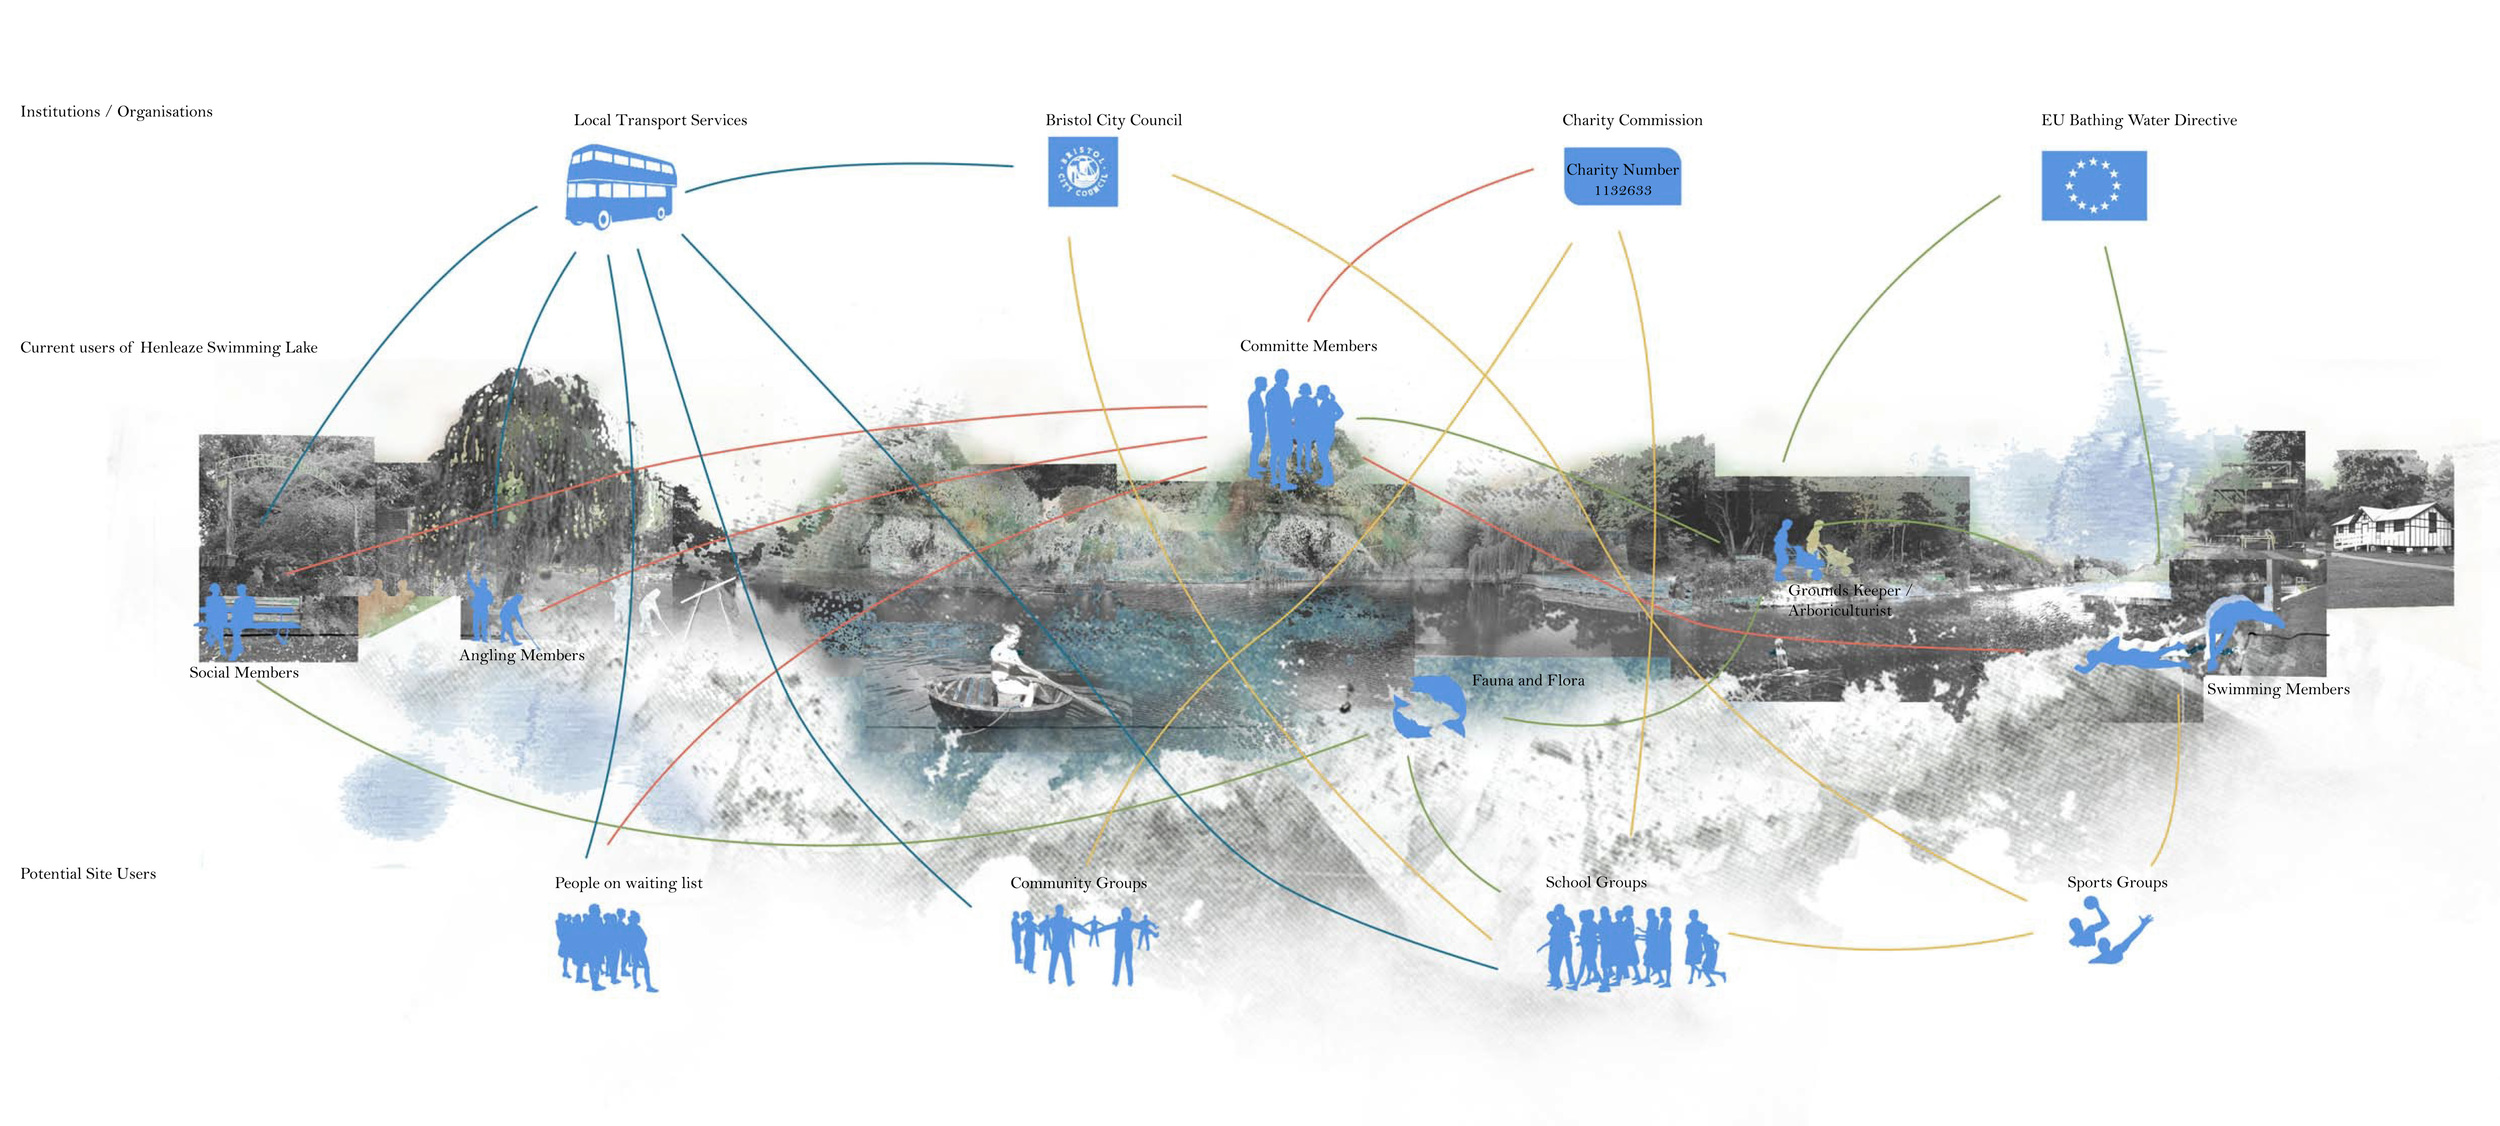 Actor Network Diagram: illustrates the connections between user groups at Henleaze Swimming Lake.